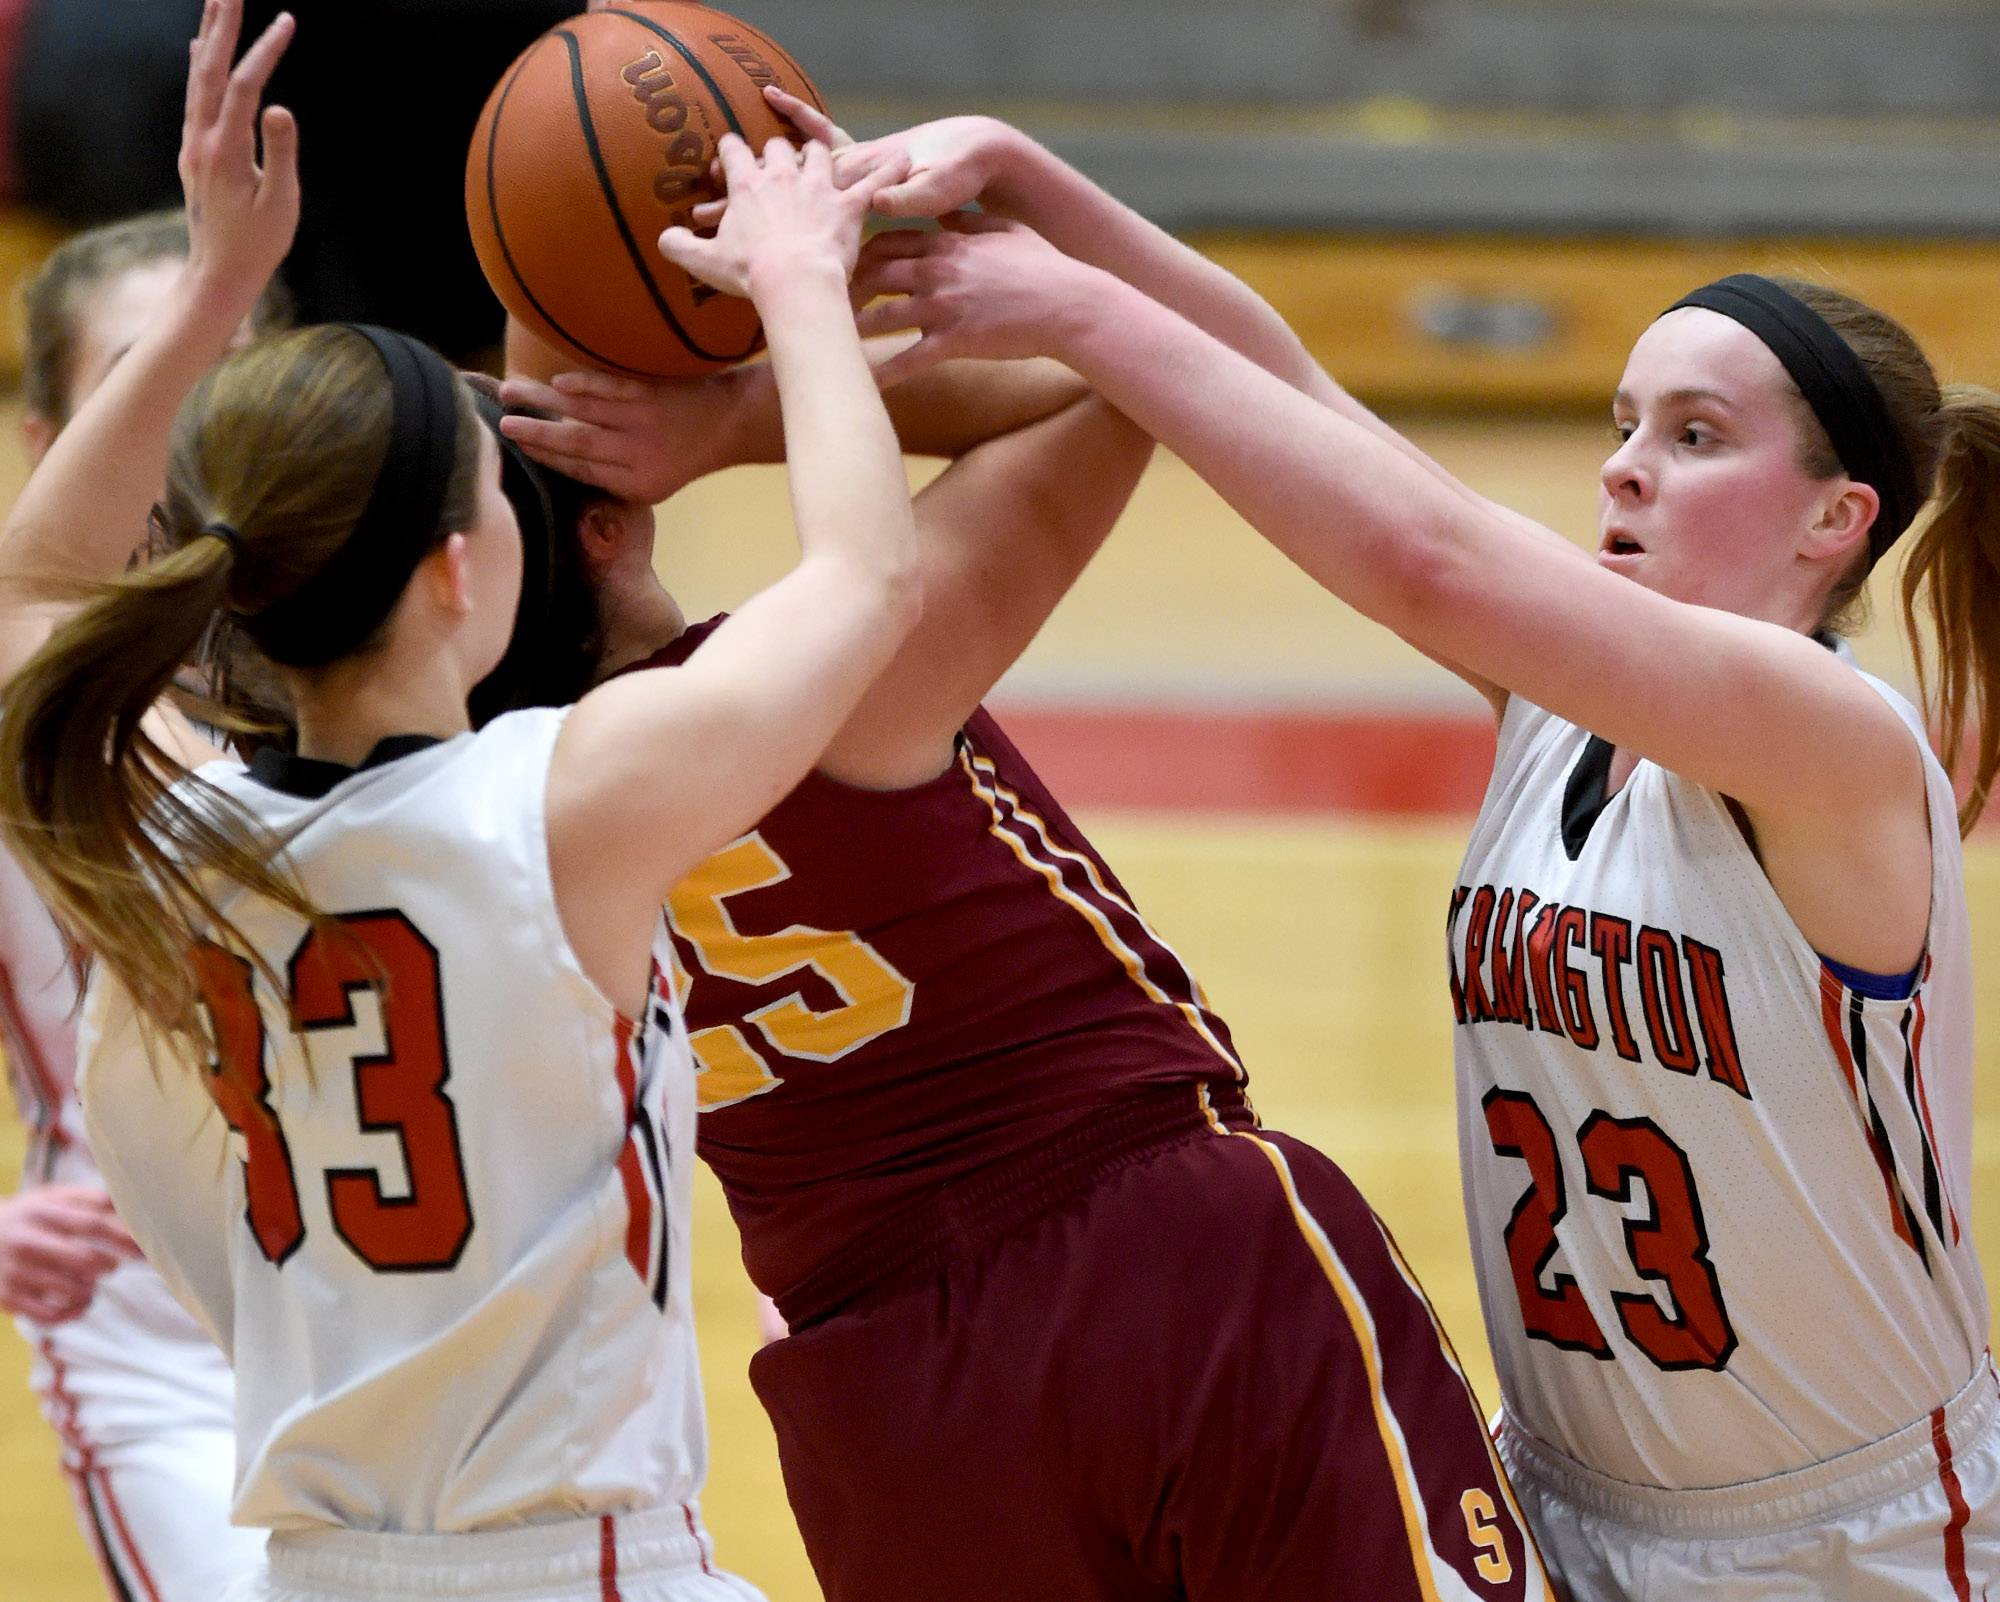 Barrington's Claire Collier (33) and Rachel Mori (23) wrestle with Schaumburg's Abigail Paolicchi for a rebound on Friday at Barrington.